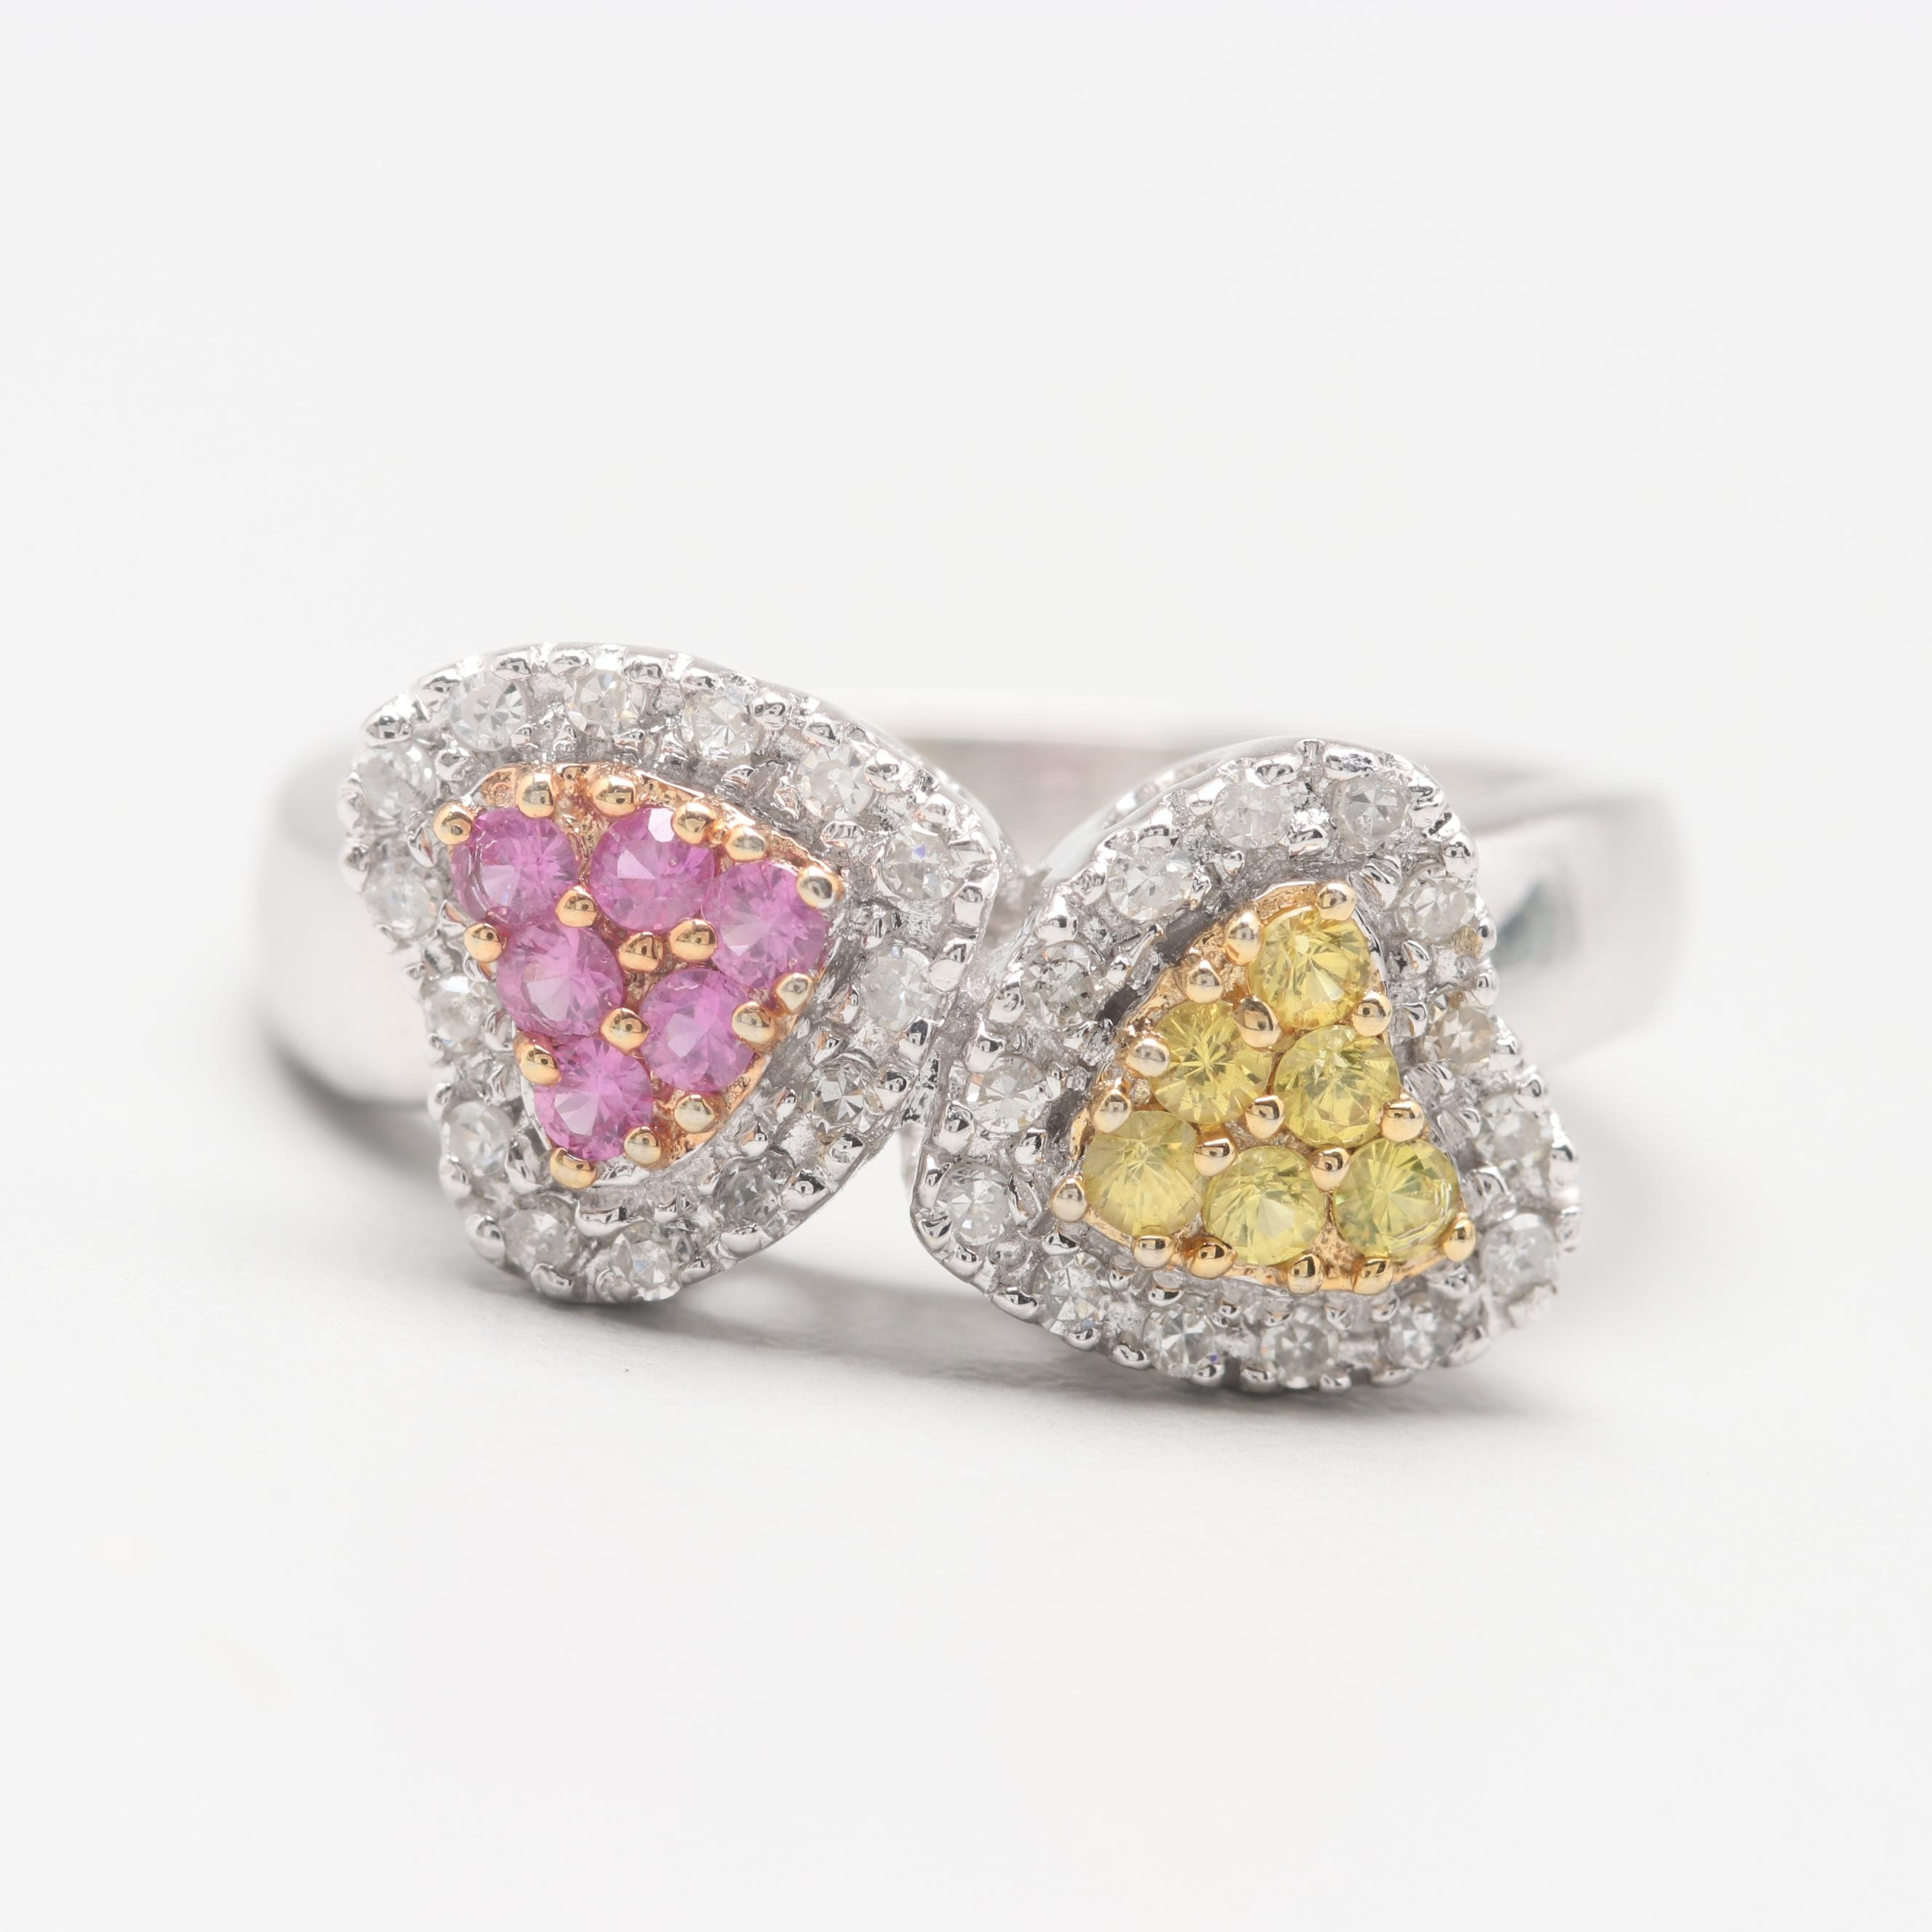 14K White Gold Yellow Sapphire, Pink Sapphire, and Diamond Ring